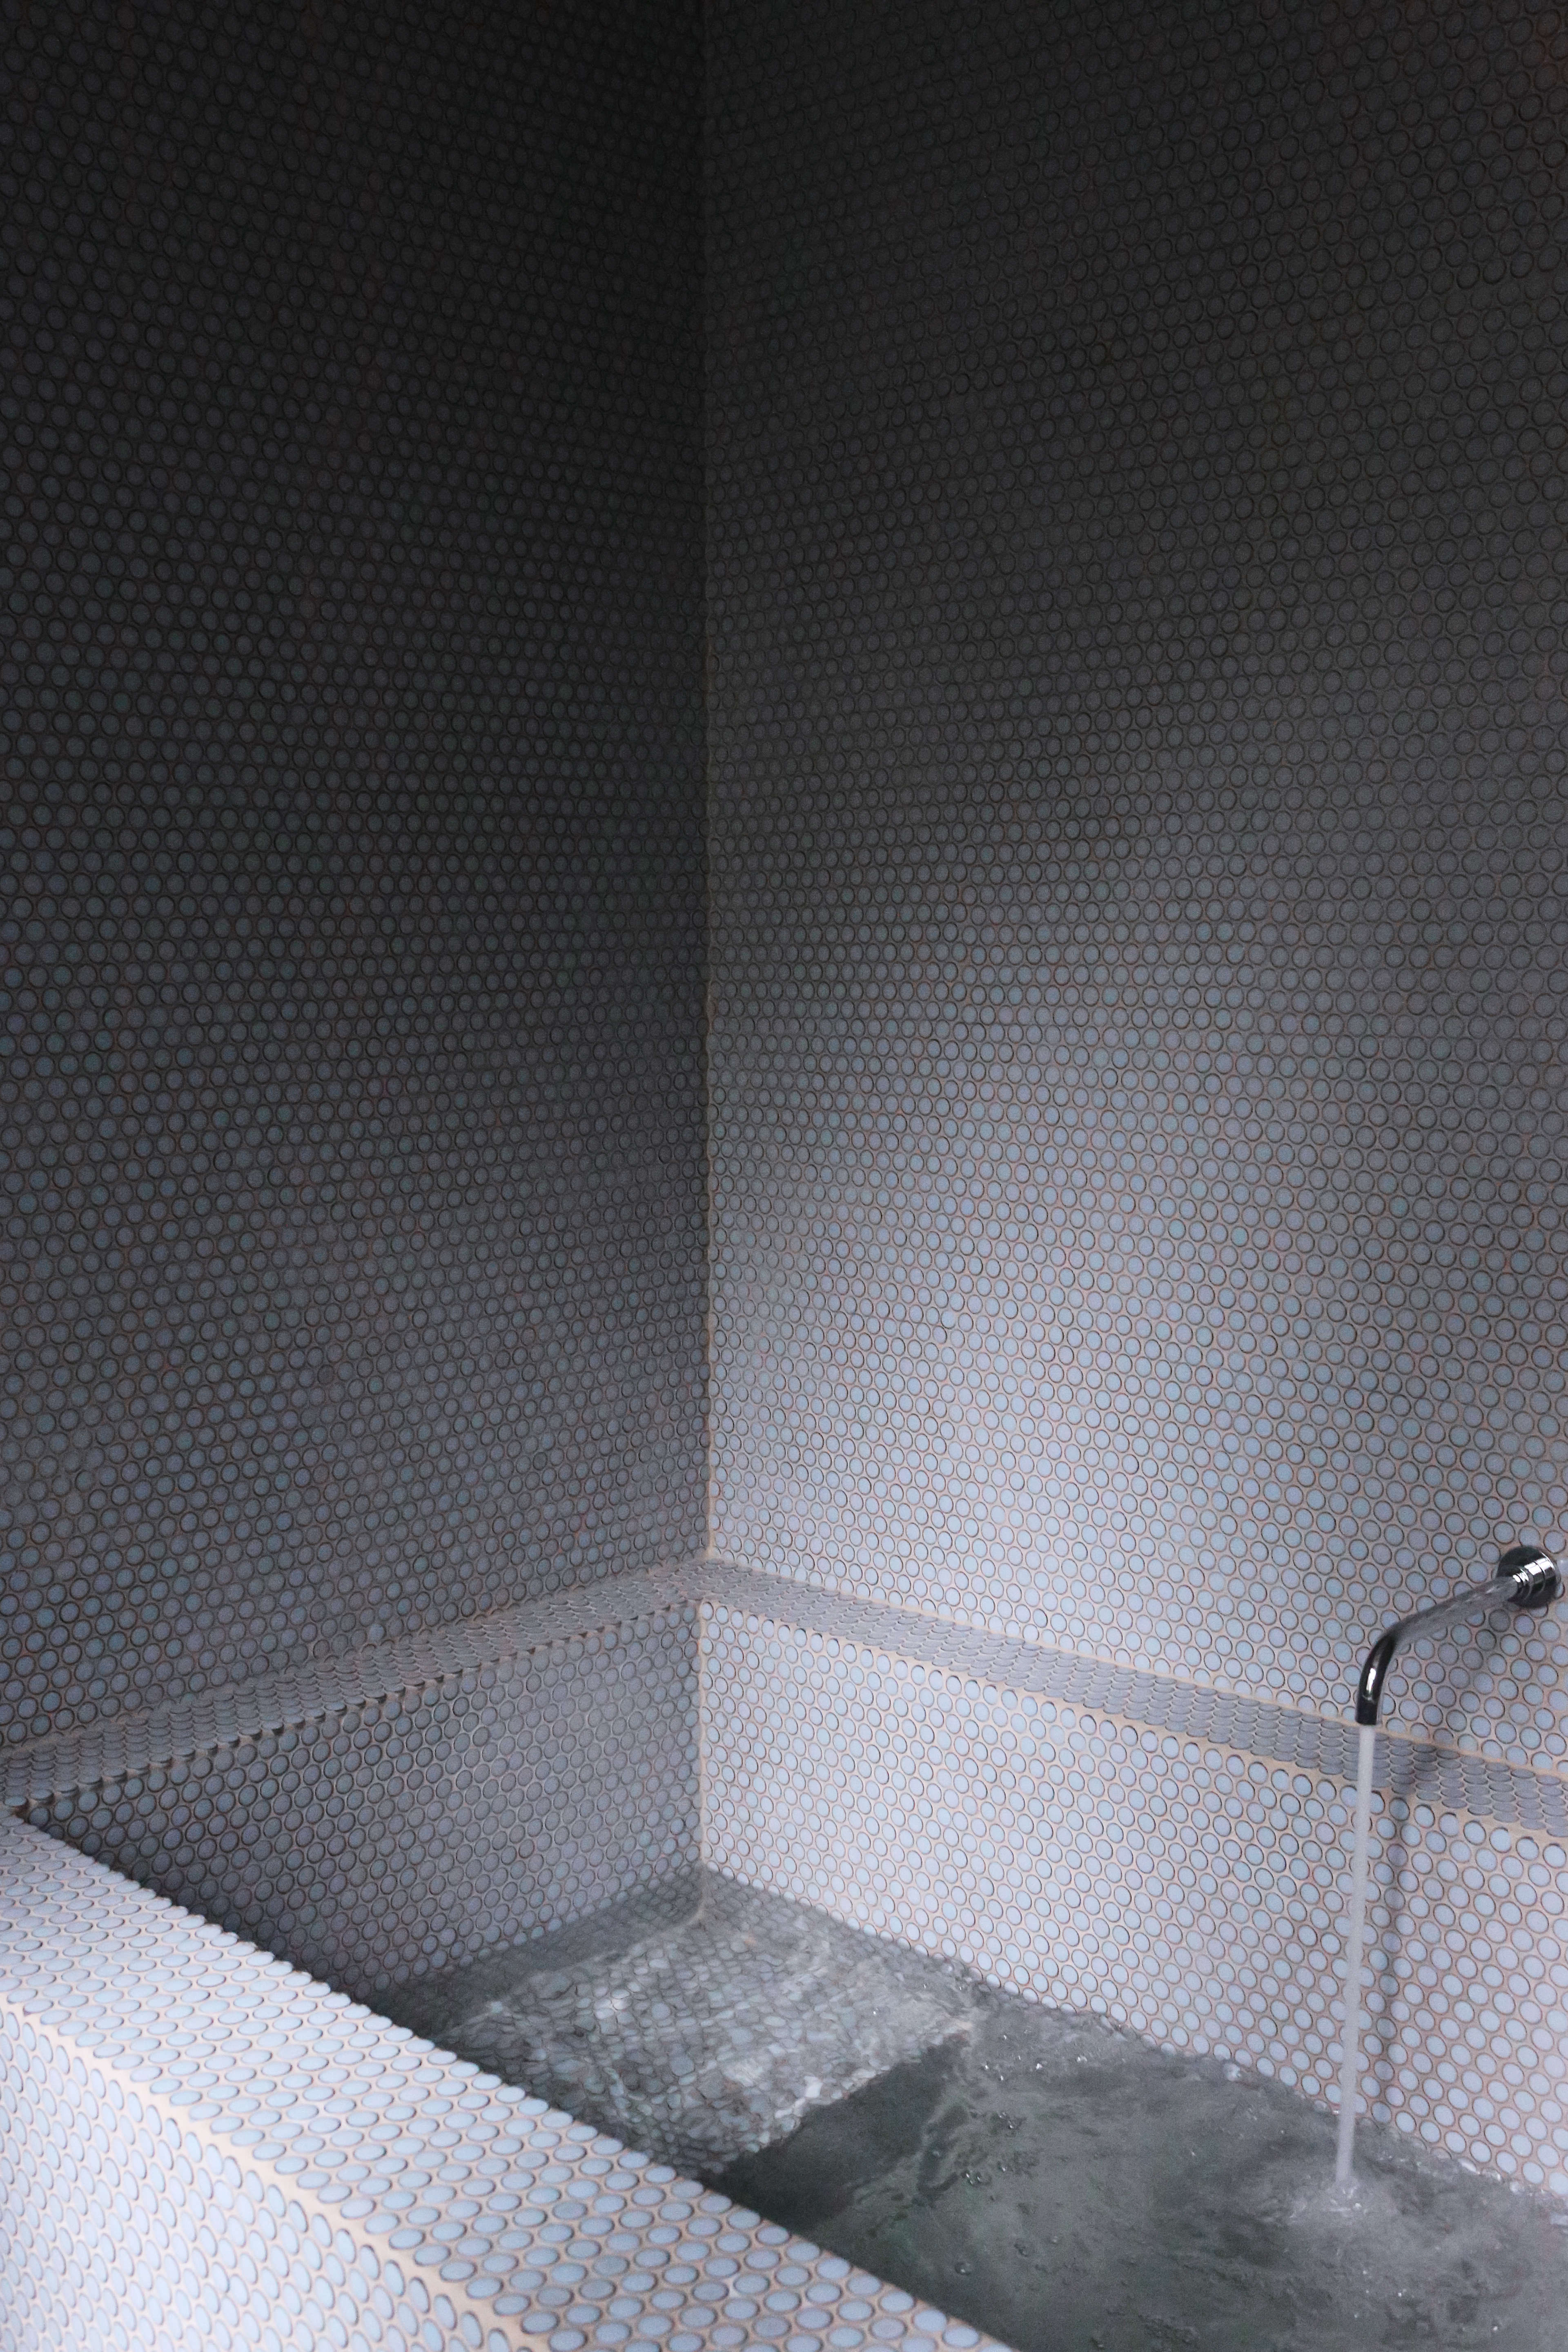 Tiled plunge pool bathtub at Jackie Winter Gardens, a guesthouse and artist residency outside Melbourne, Australia, designed by Searah Trotter of Hearth; Rhiannon Taylor photo| Remodelista